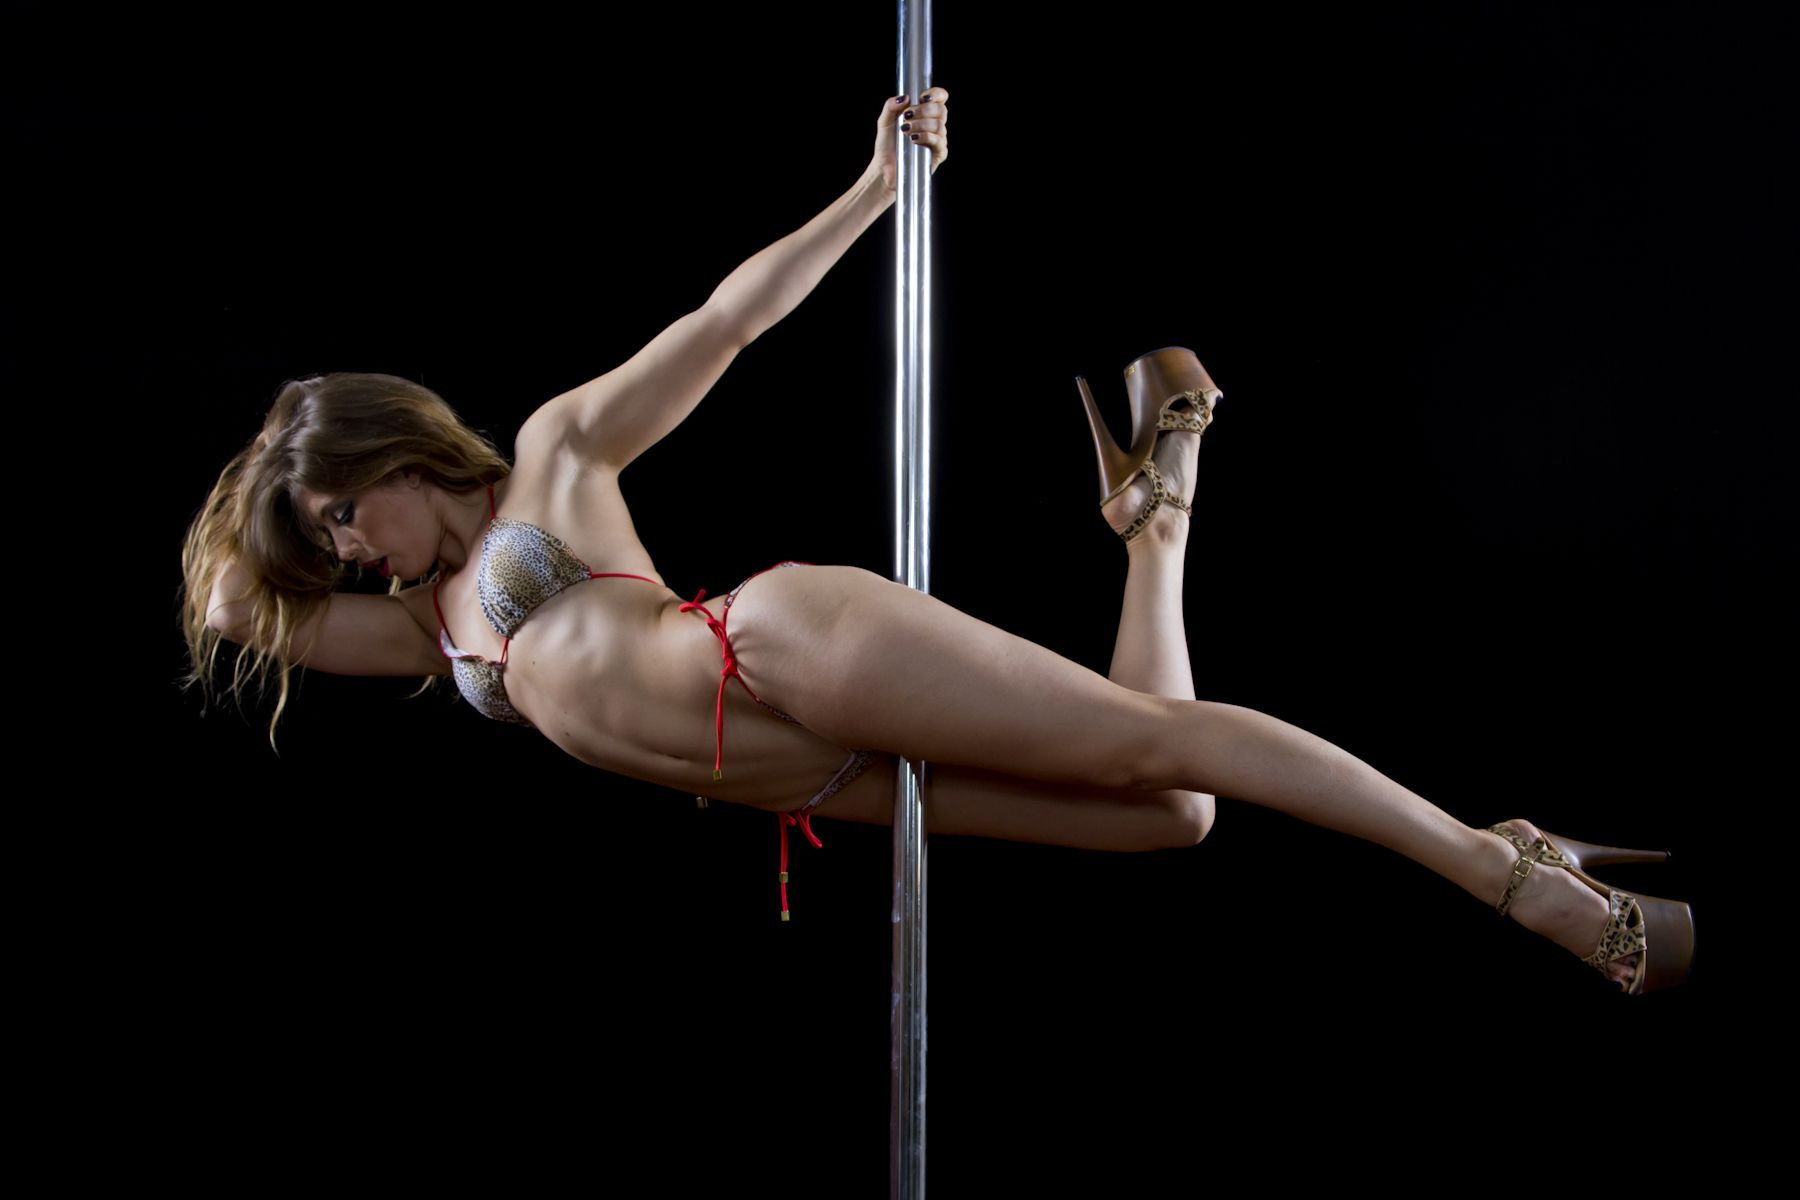 sexy-girl-dancing-on-pole-gif